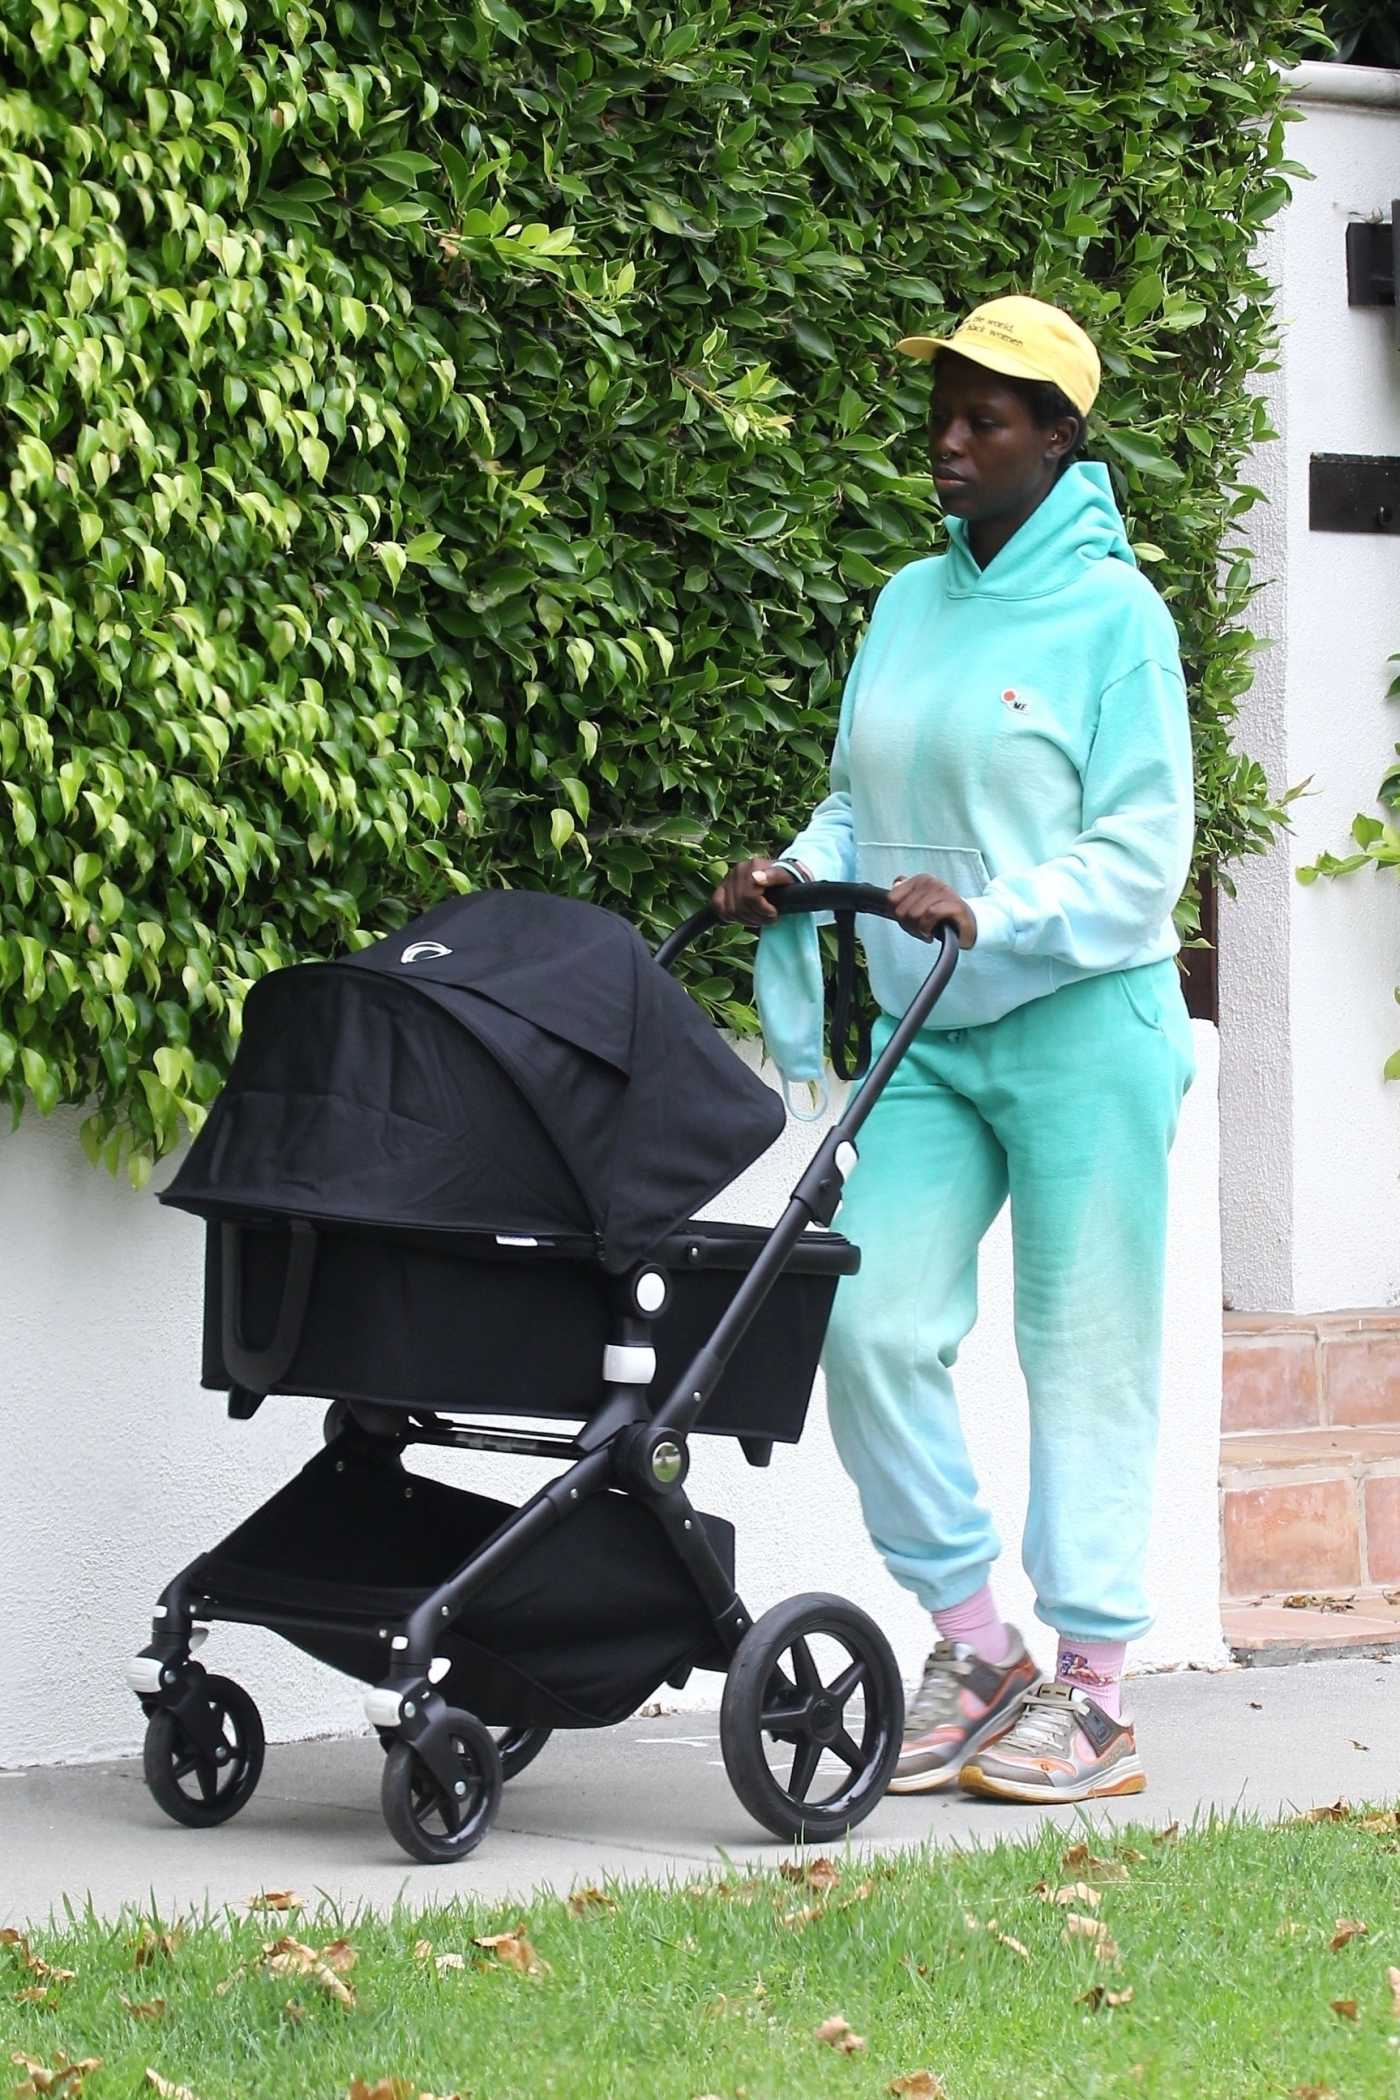 Jodie Turner-Smith in a Yellow Cap Takes an Afternoon Stroll with Her Newborn Baby in Los Angeles 06/16/2020